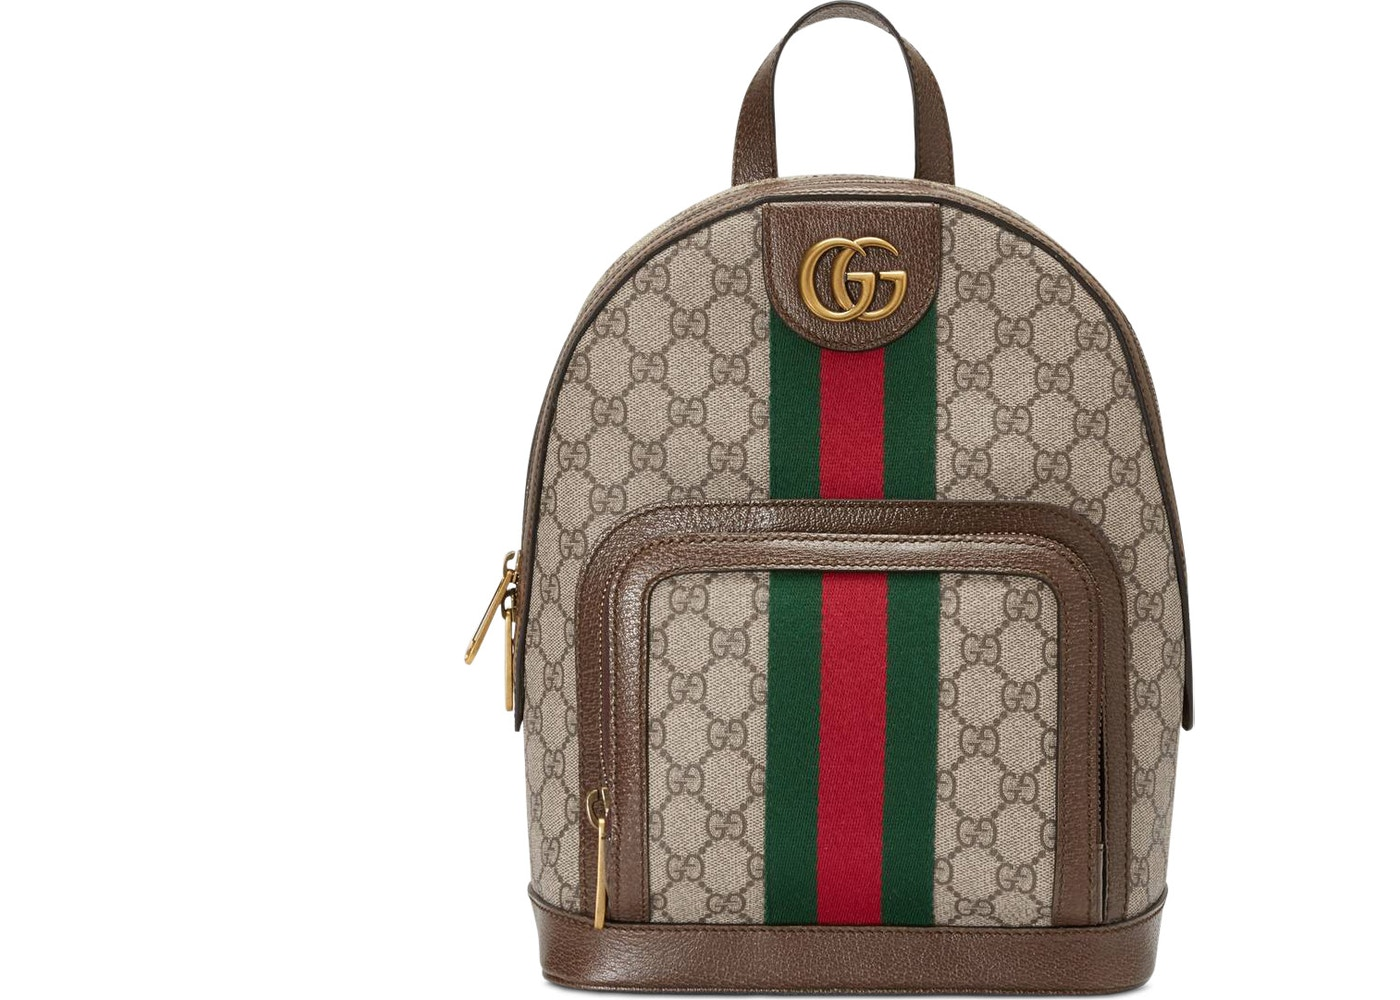 377275cf3b7334 Gucci Ophidia Backpack GG Supreme Small Beige/Ebony. GG Supreme Small Beige /Ebony